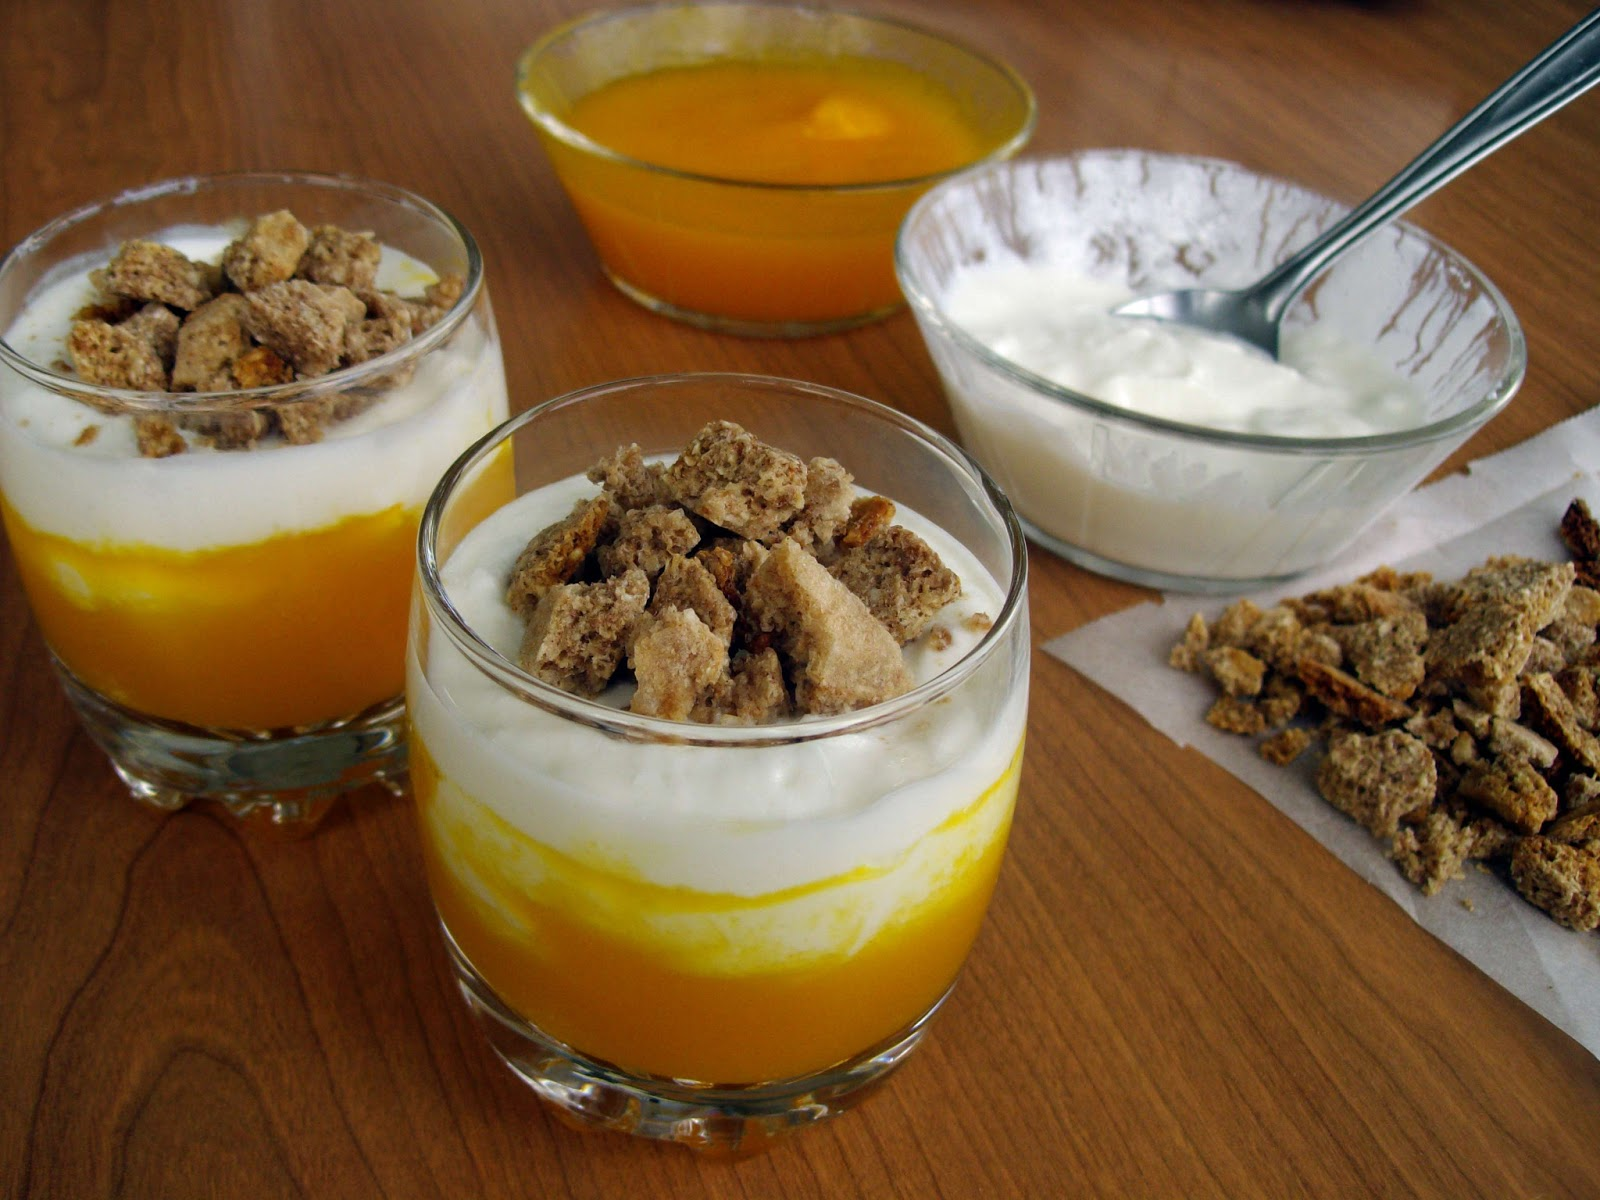 Vasitos de calabaza y yogur dukan